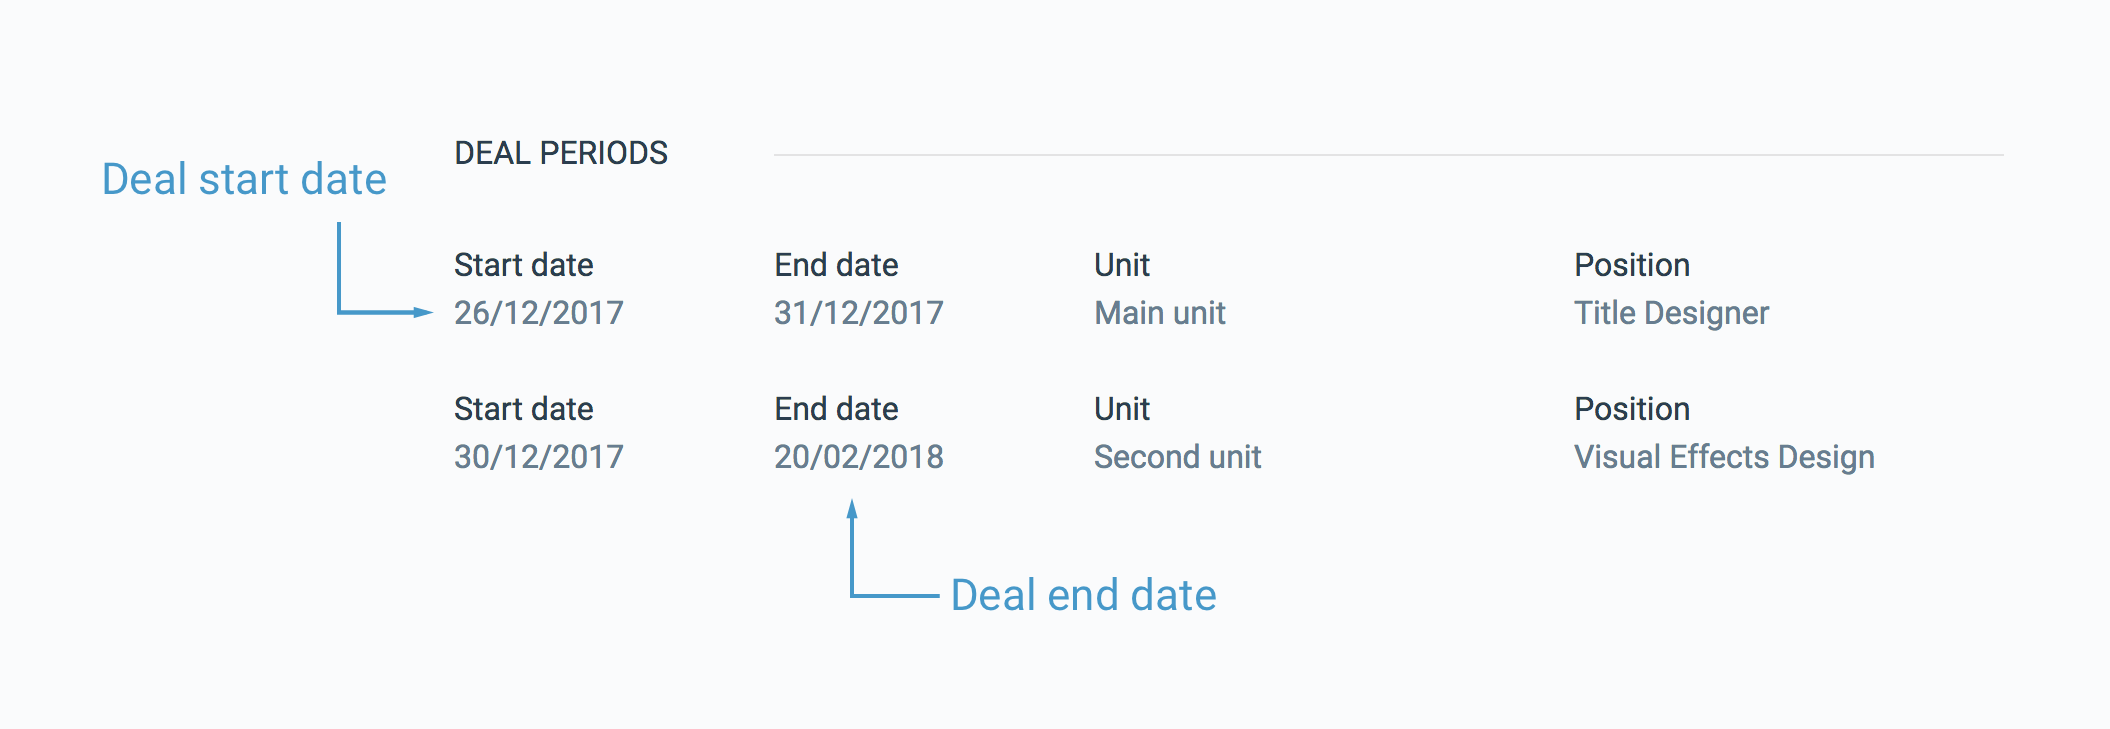 Deal_start_date_-_deal_end_date.png